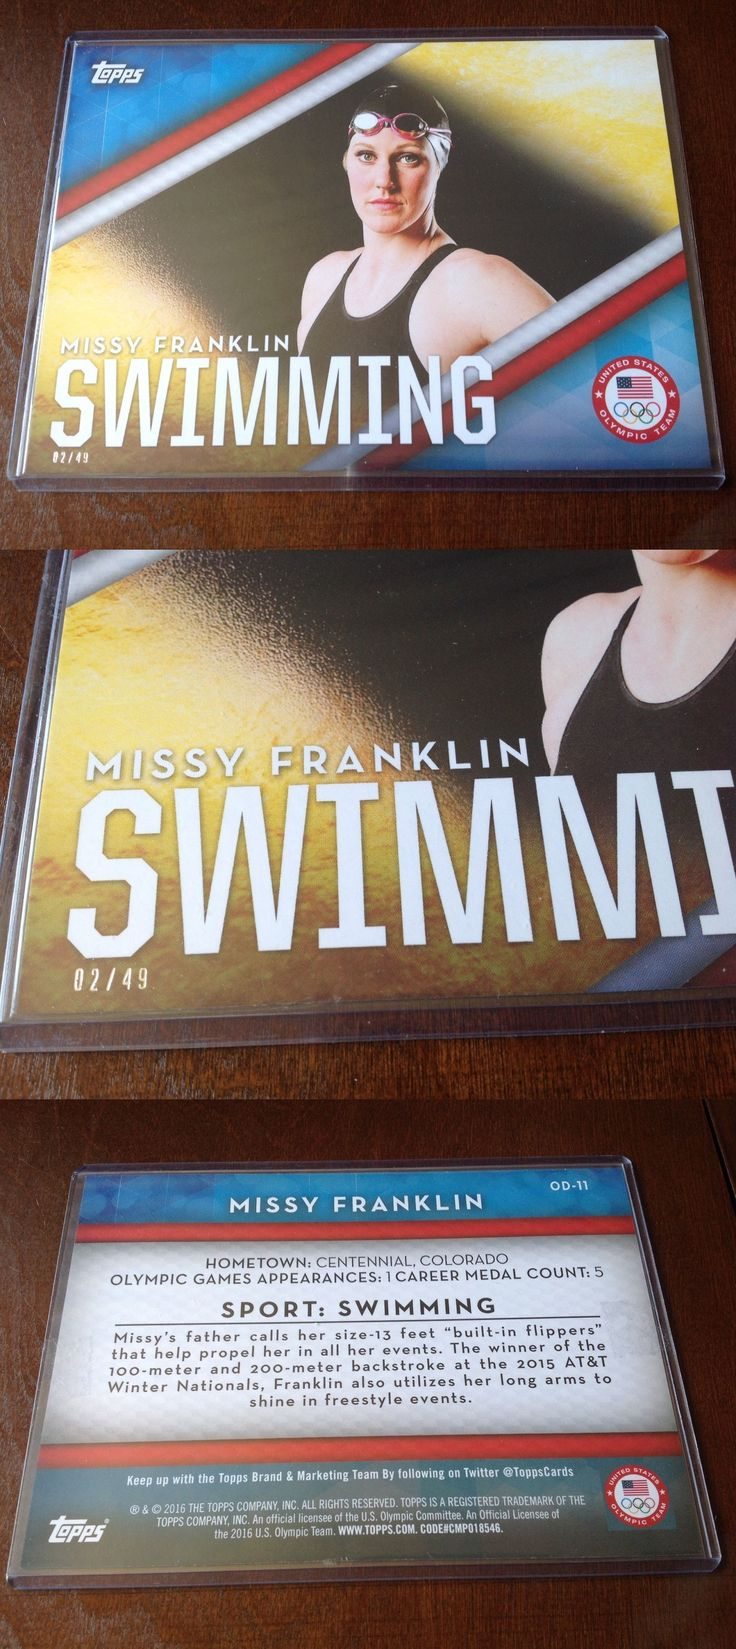 Olympics Cards 2956: 2016 Topps Jumbo Missy Franklin Ser # D 2 49 Olympics 5X7 Large Card Swimming -> BUY IT NOW ONLY: $49.99 on eBay!